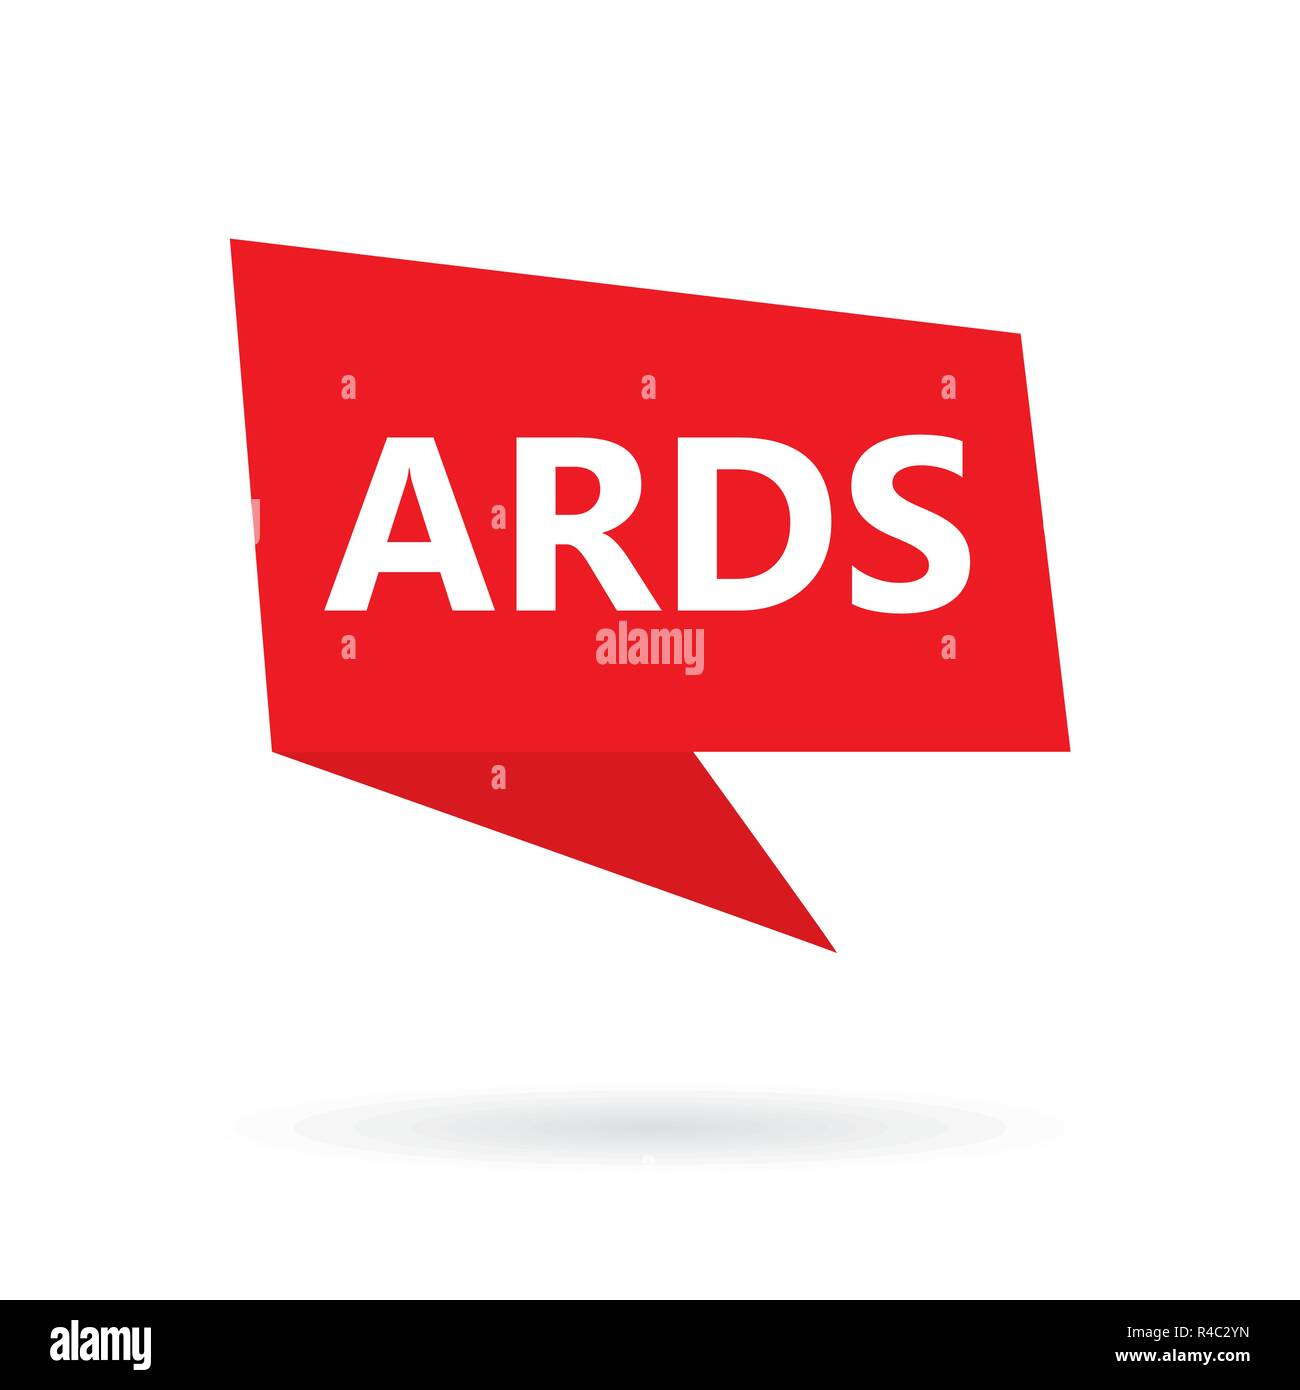 ARDS (Acute Respiratory Distress Syndrome) acronym on a speach bubble - Stock Vector